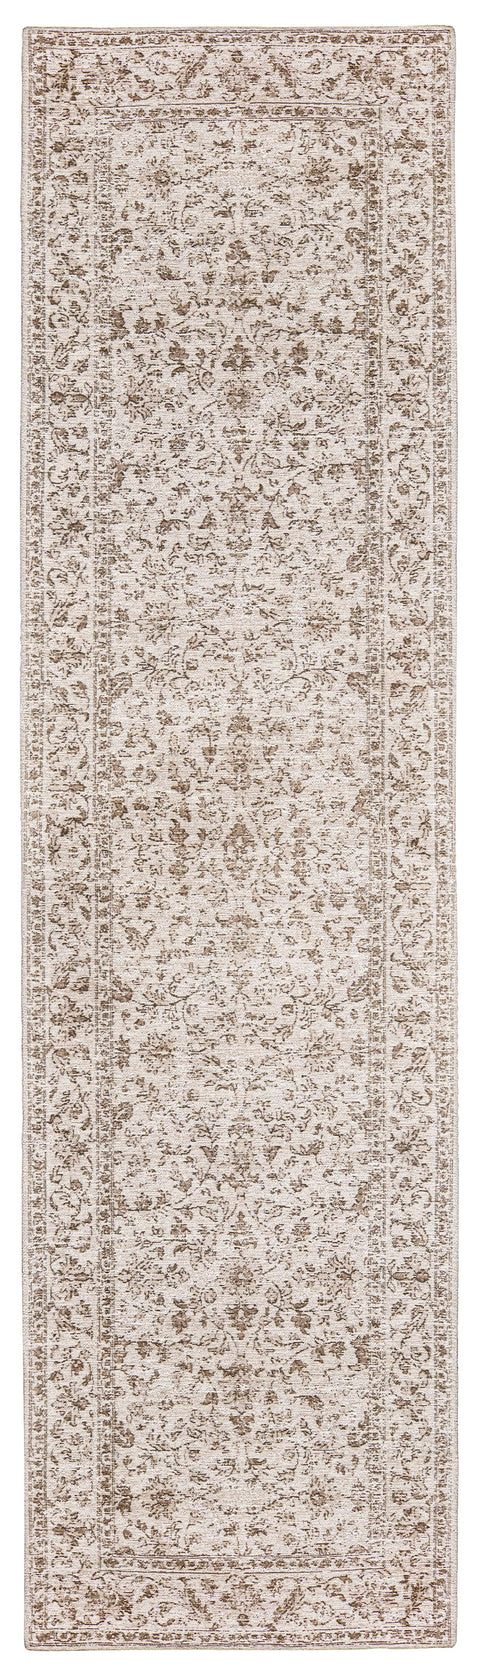 Moselle Beige and Brown Floral Distressed Runner Rug